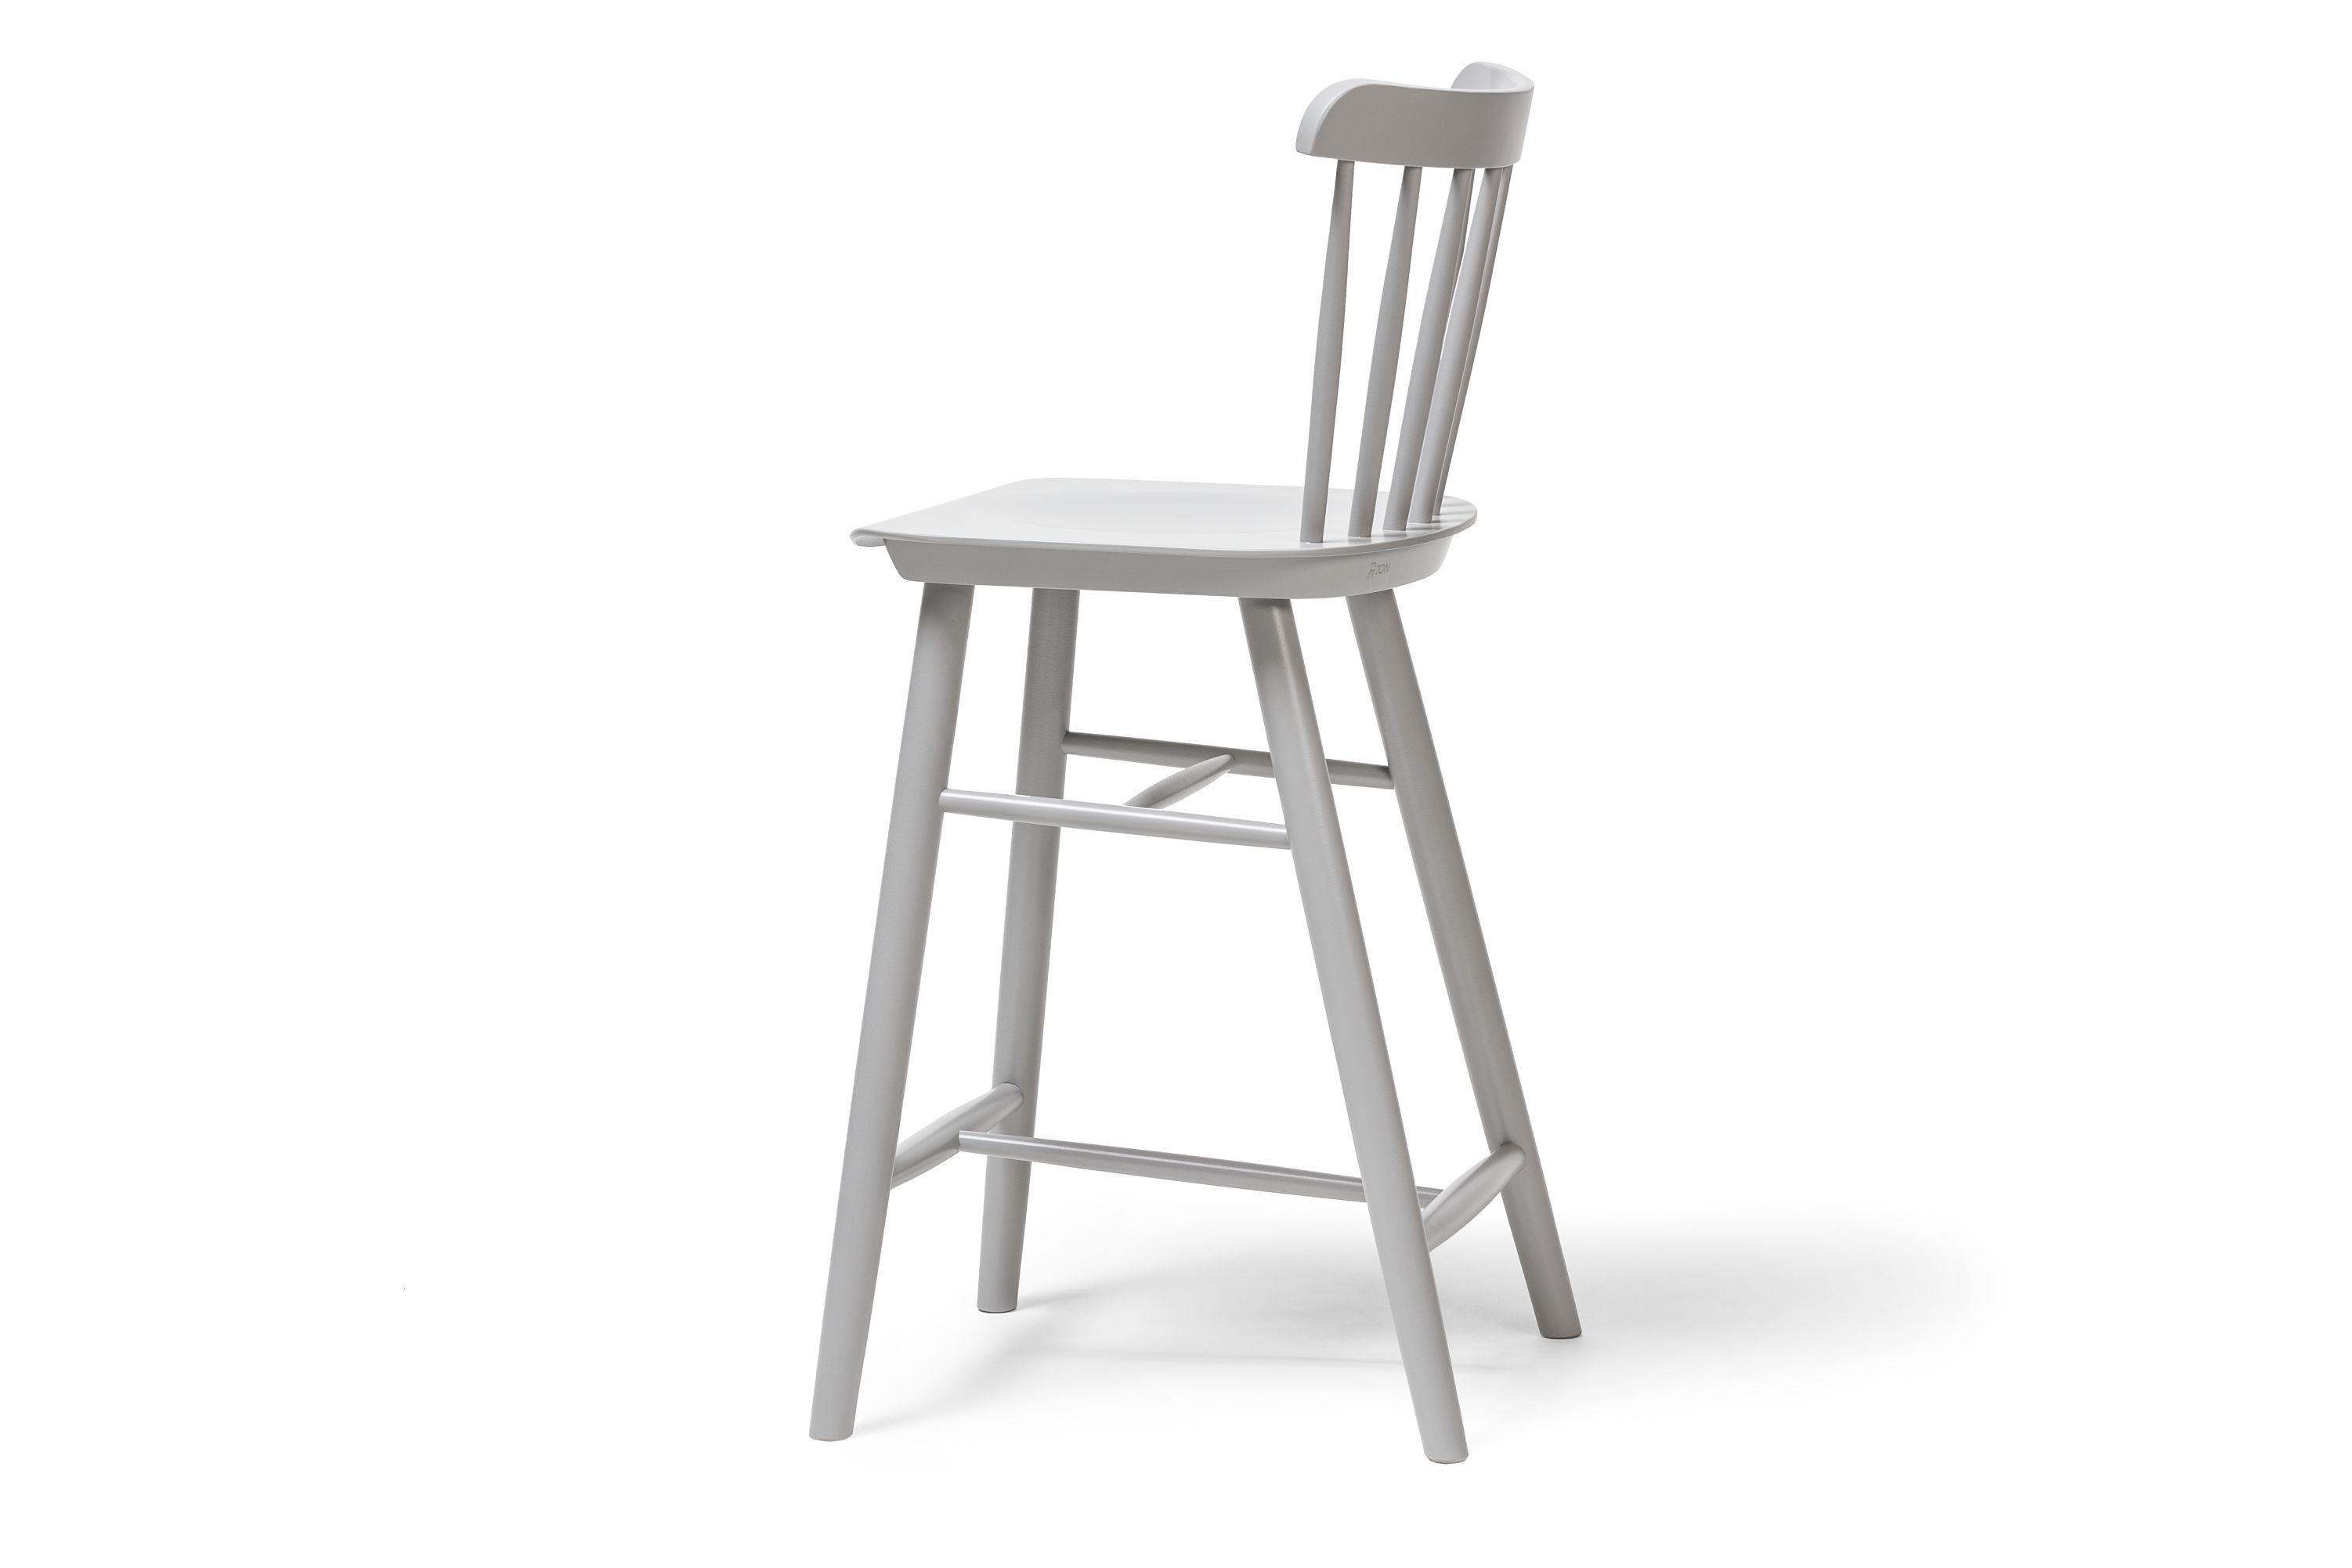 Ironica bar stool by TON | STYLEPARK